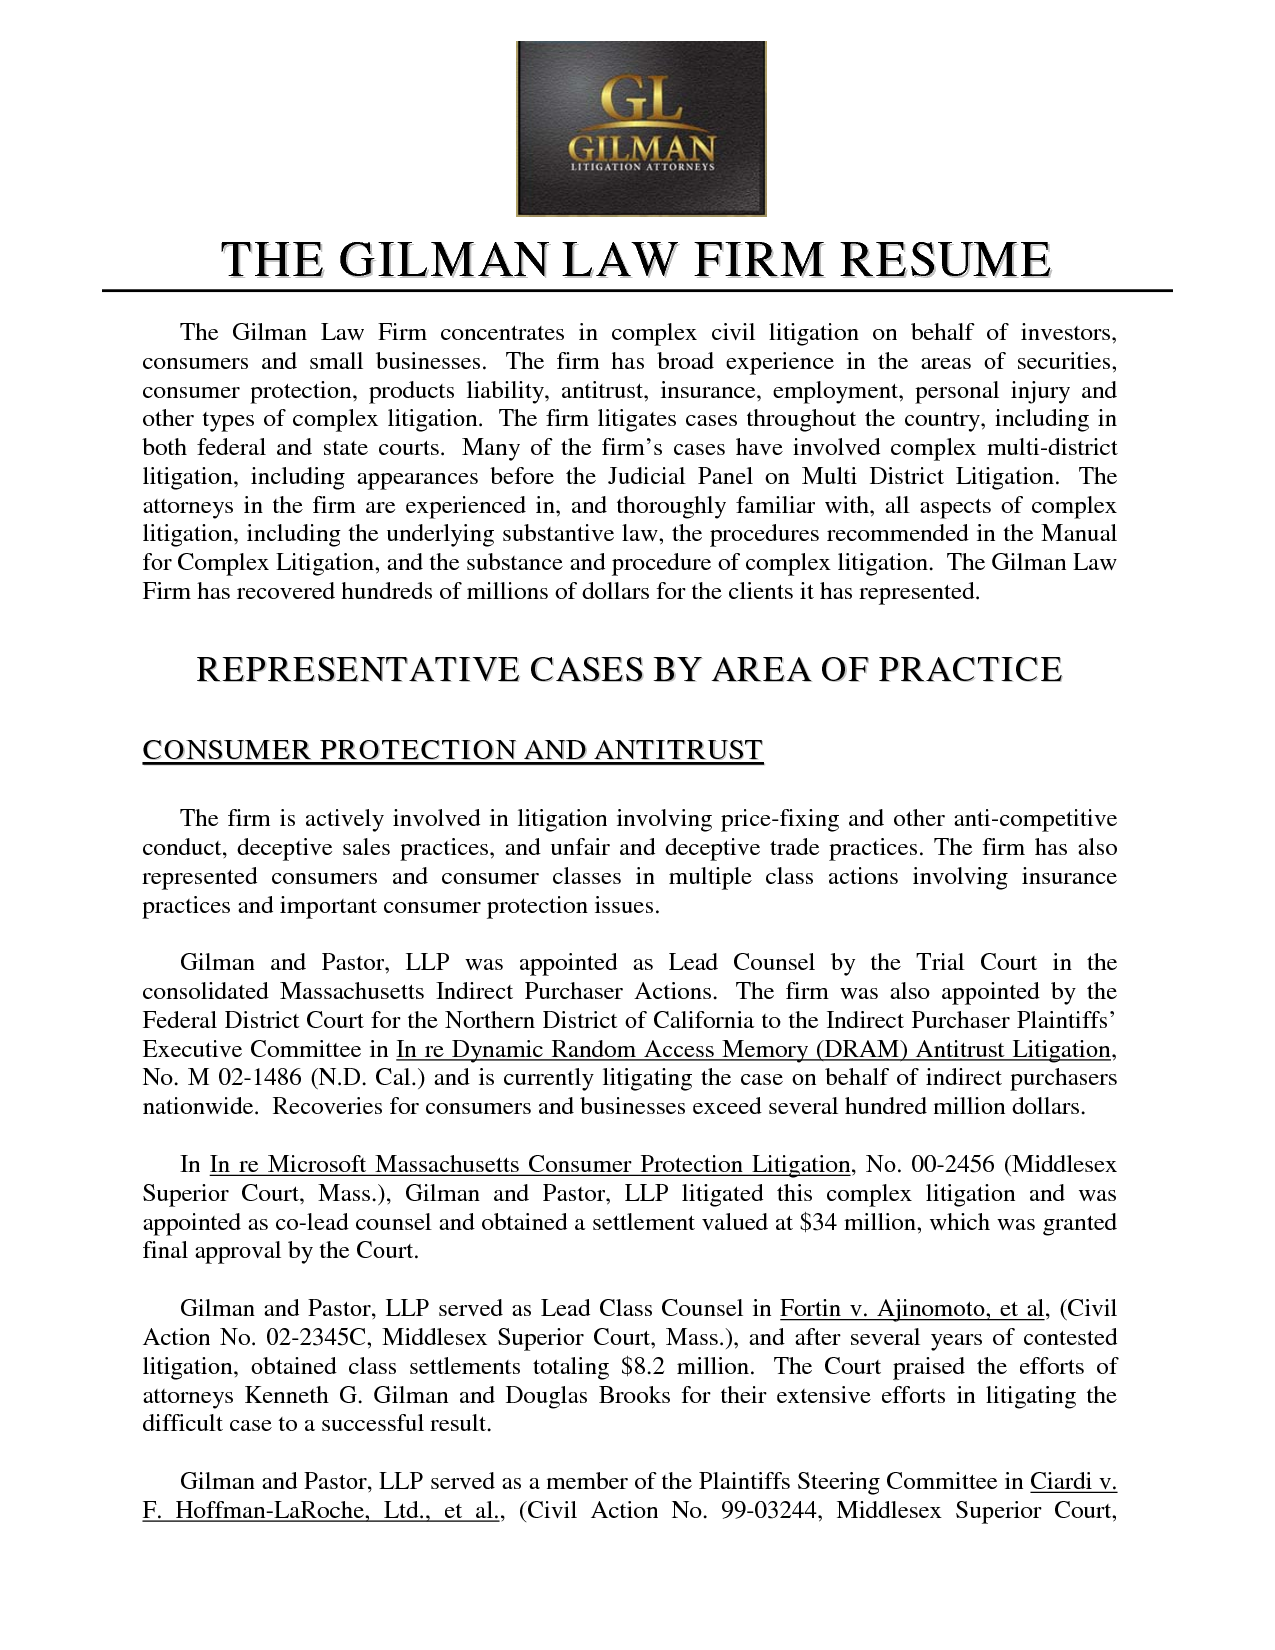 sample securities lawyer resume representative cases by area of practice